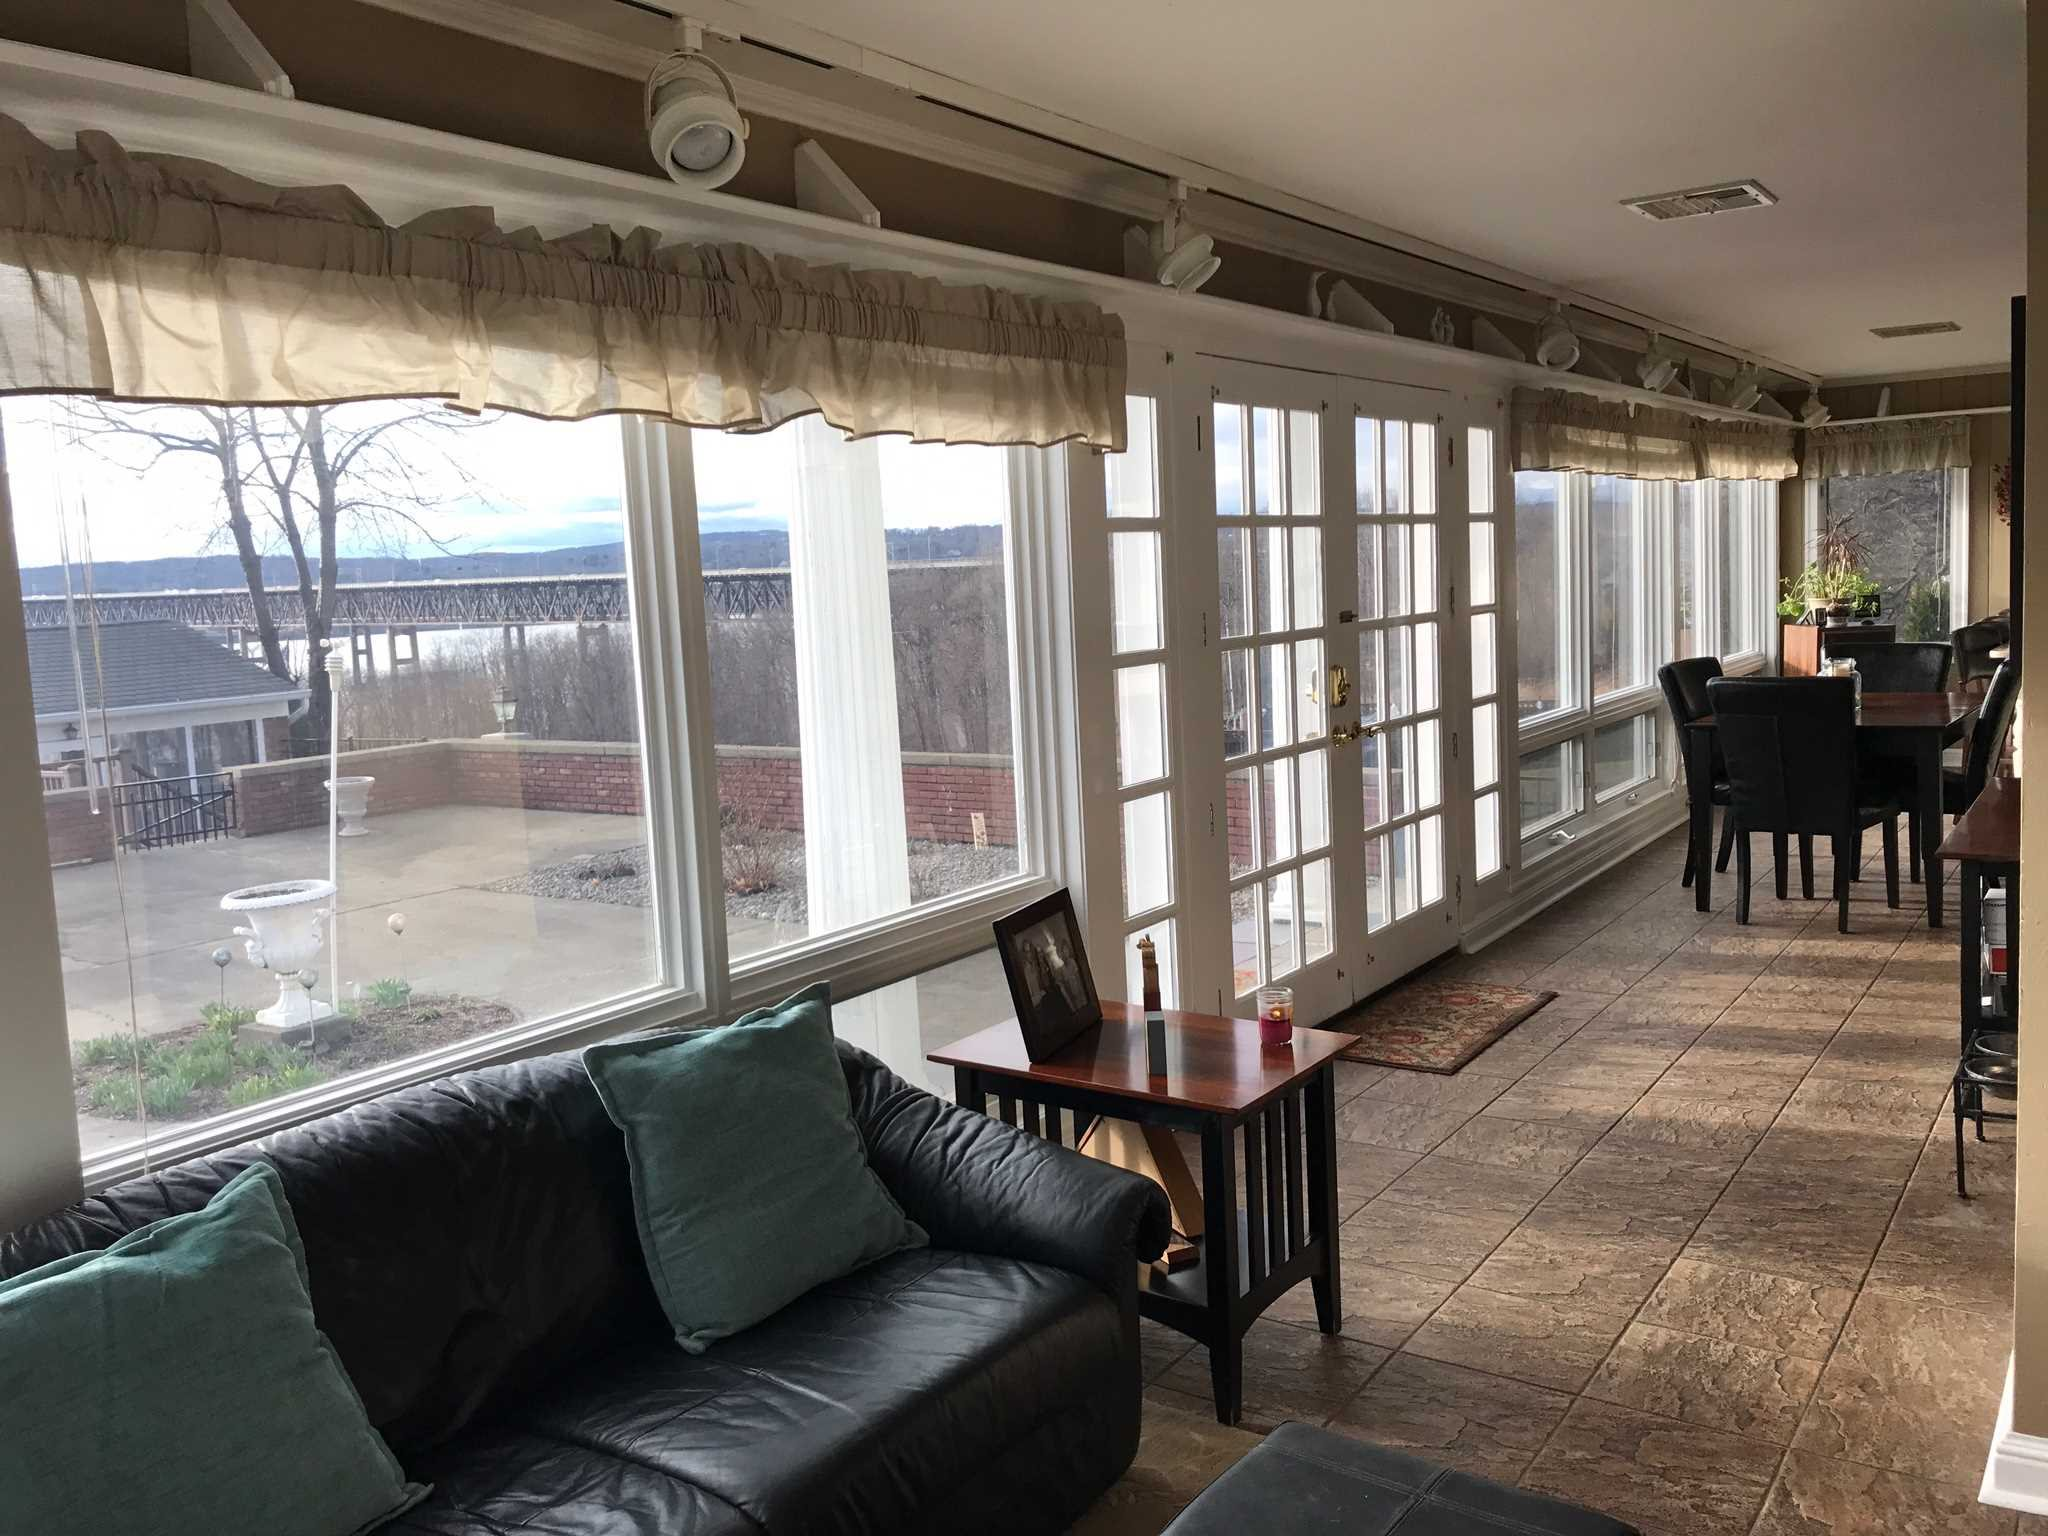 Additional photo for property listing at 32 MONELL Place 32 MONELL Place Beacon, New York 12508 United States